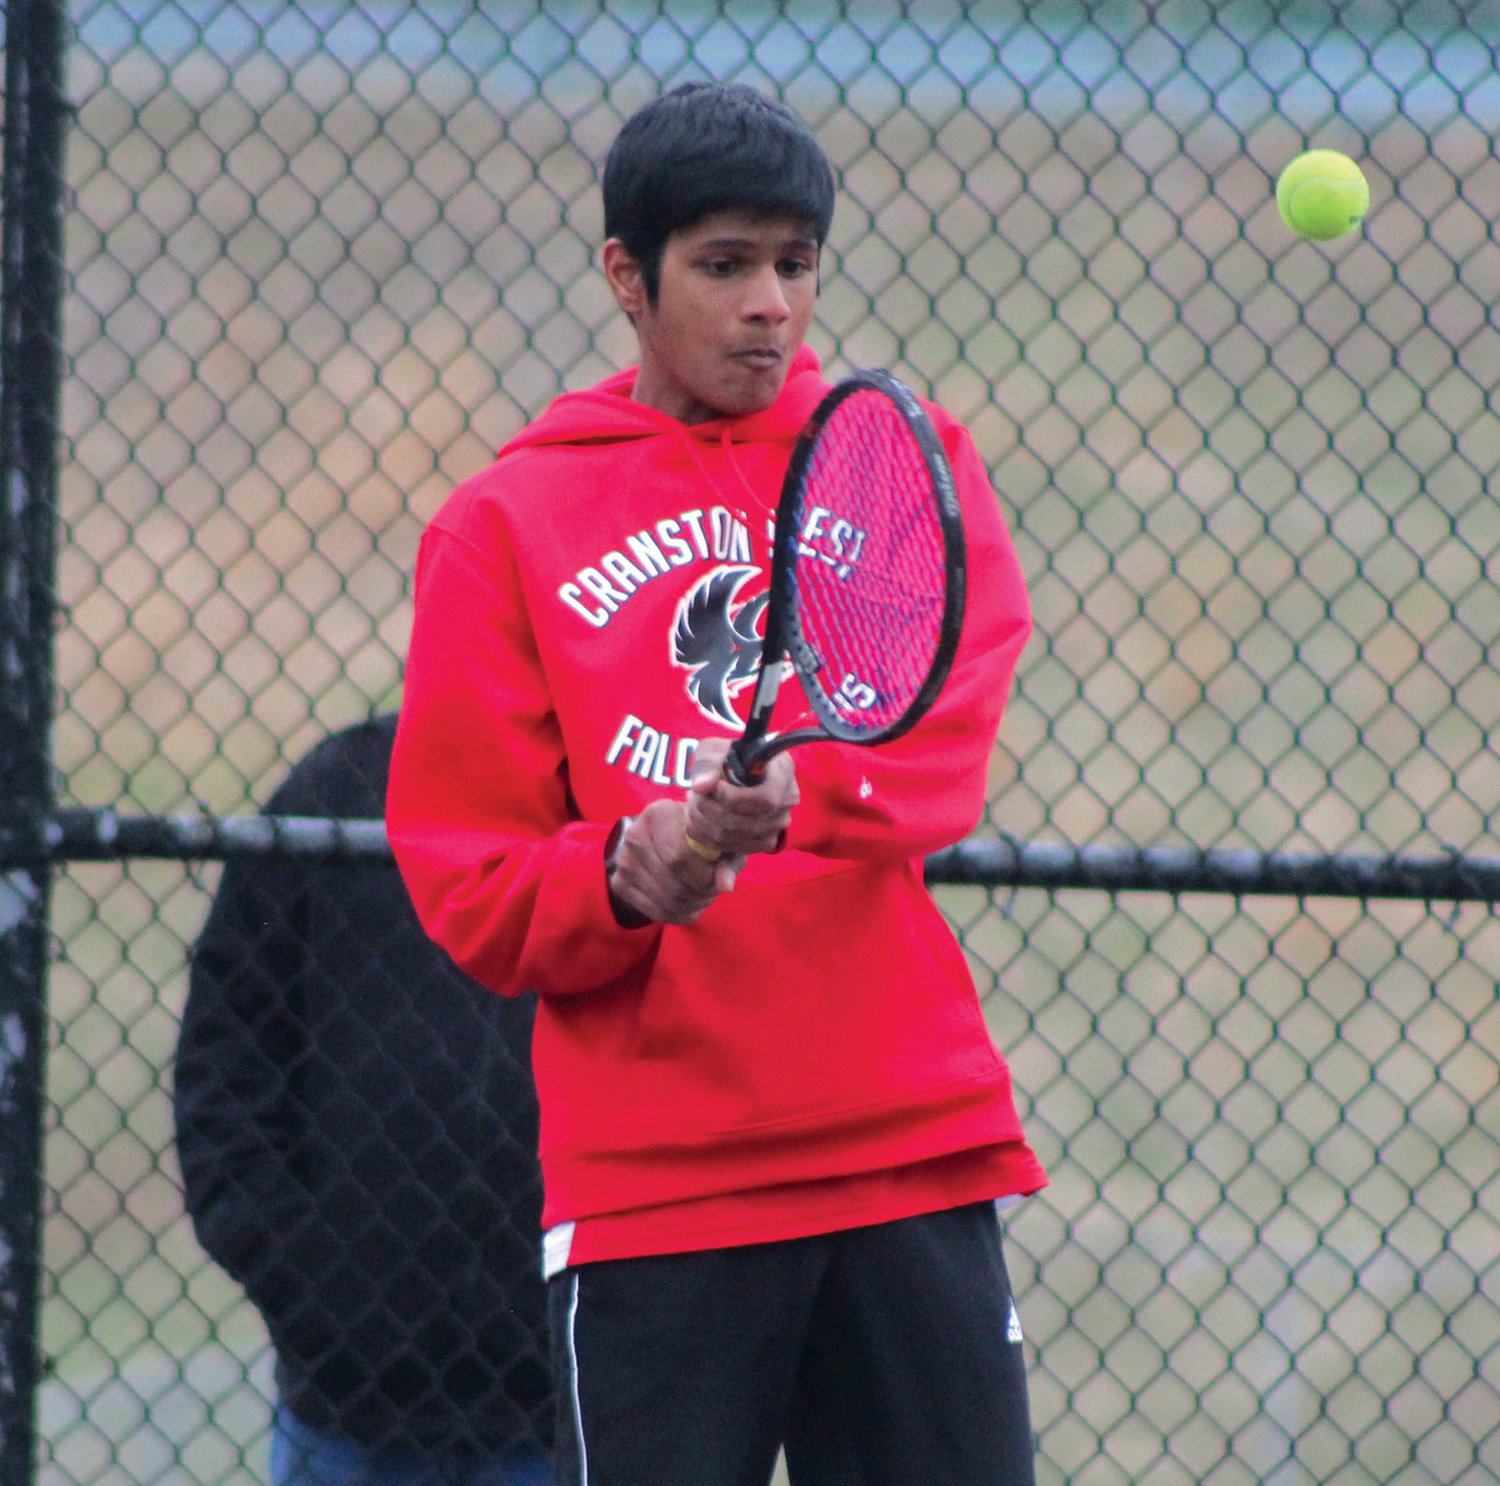 RETURN FIRE: West's Ajay Chandrasekaran returns a shot.